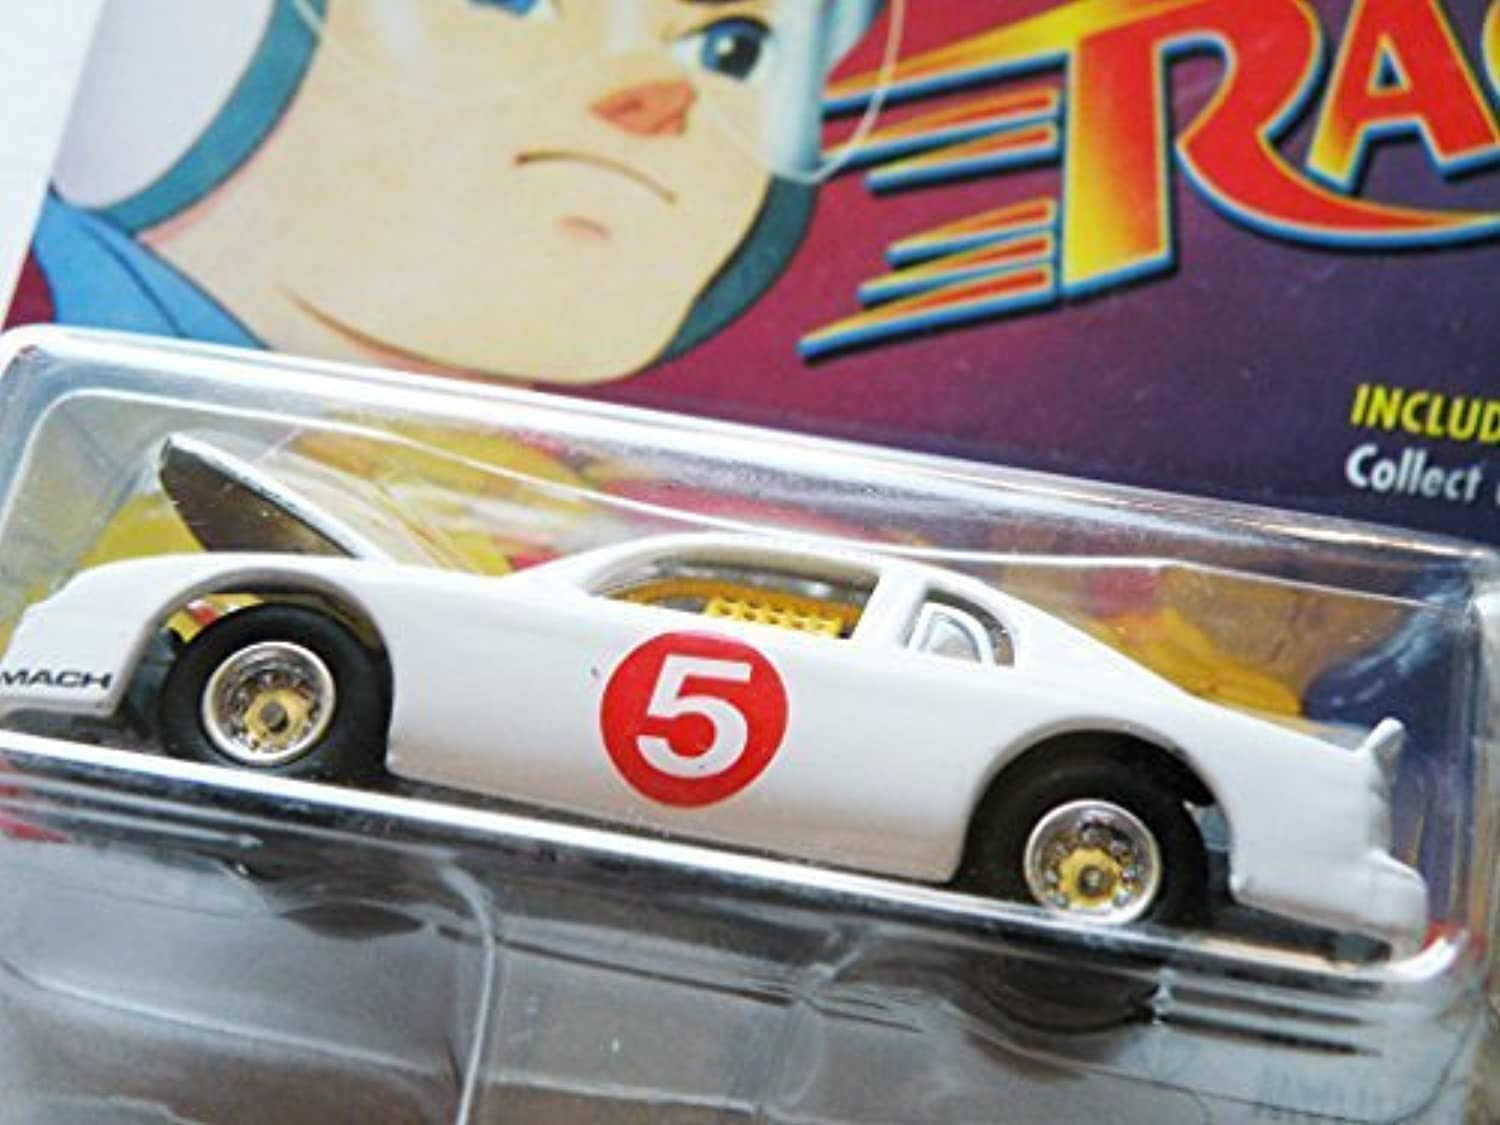 Johnny Lightning Speed Racer 2000  Mach 5 Stock Car  with Bonus Film Strip Token by Playing Mantis